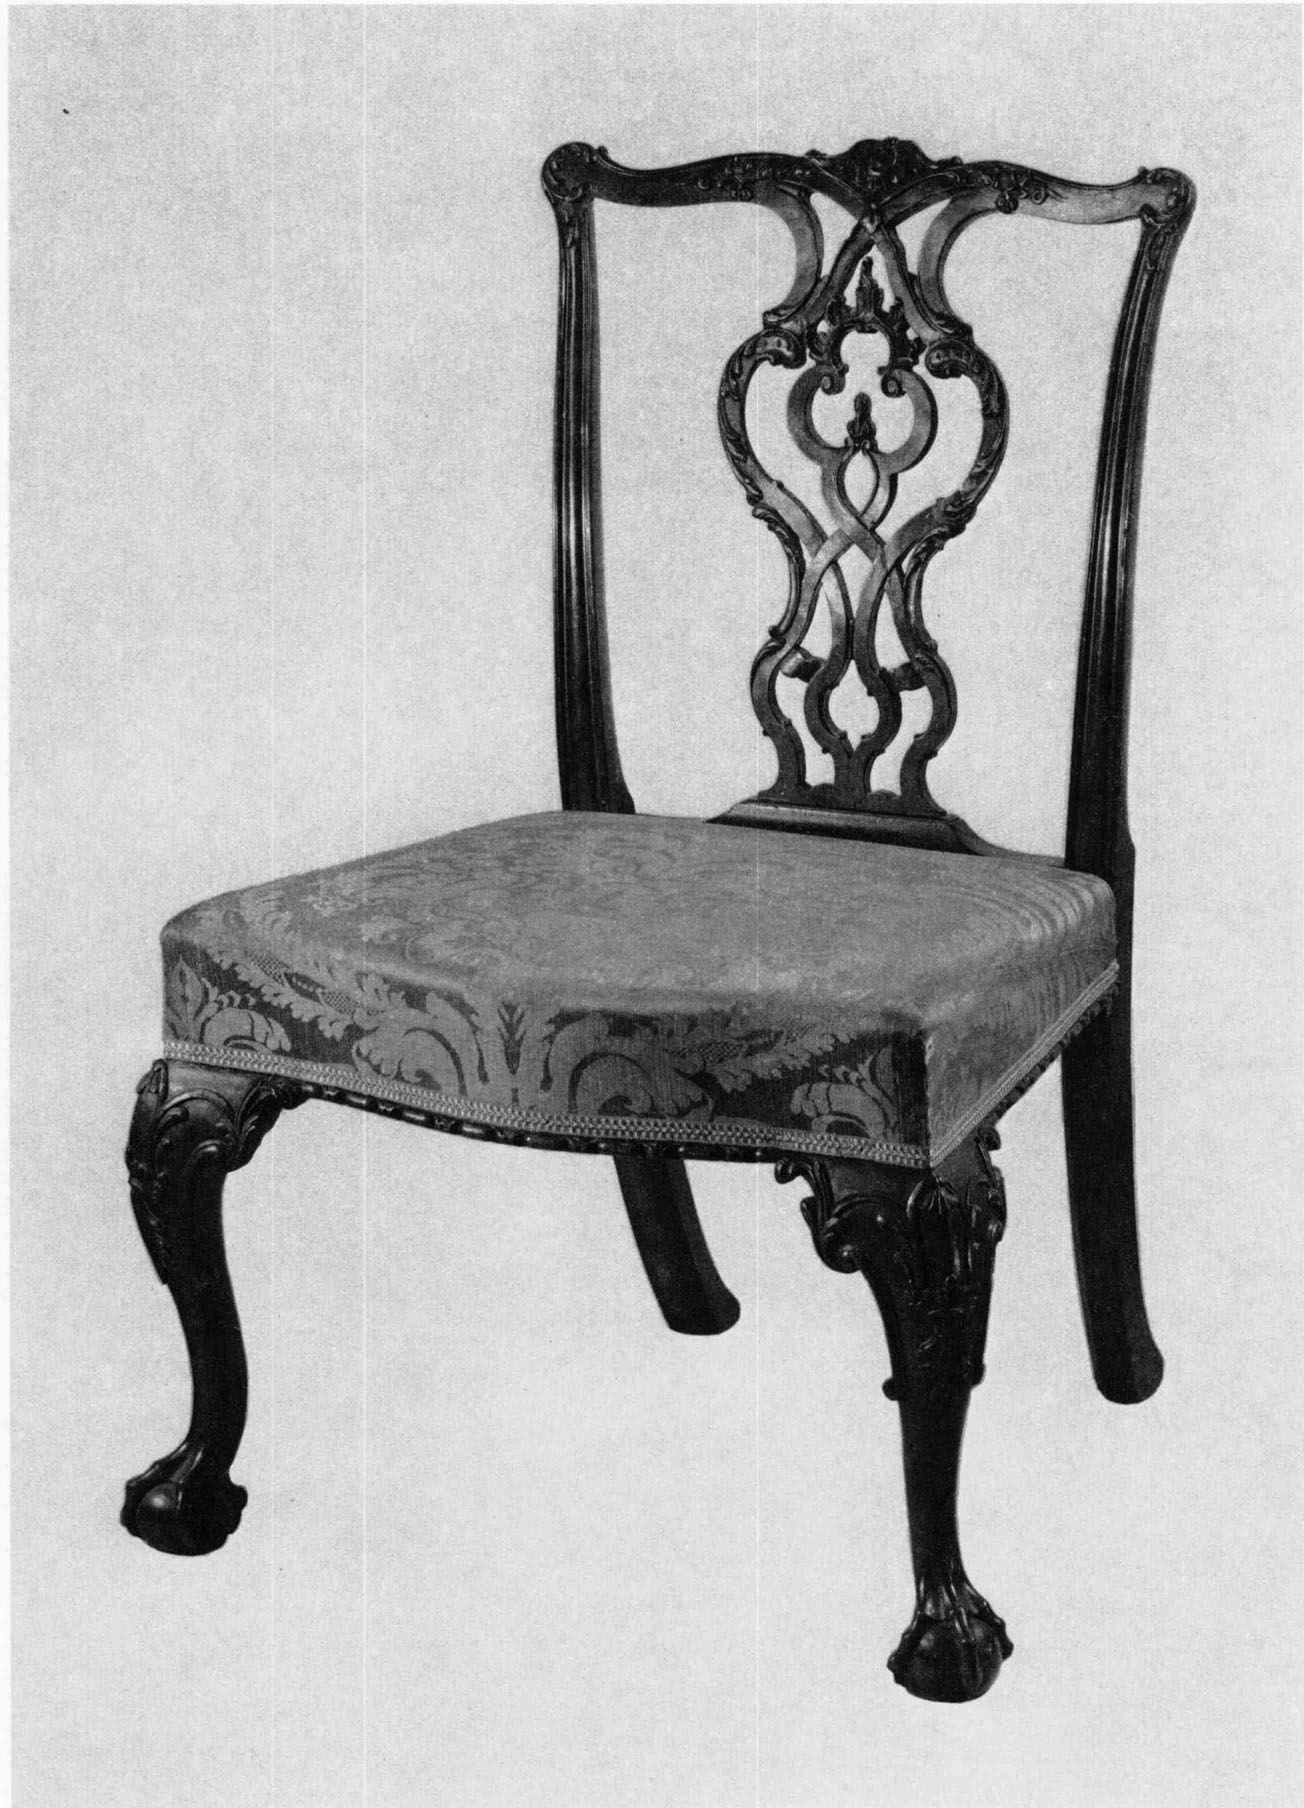 1760u20131780. Mahogany And Beech; H. 37¼ Inches, W. 22½ Inches, D. 19 Inches.  (Museum Of Fine Arts, Boston, Gift Of Mrs. Guy Currier, 35.1977.